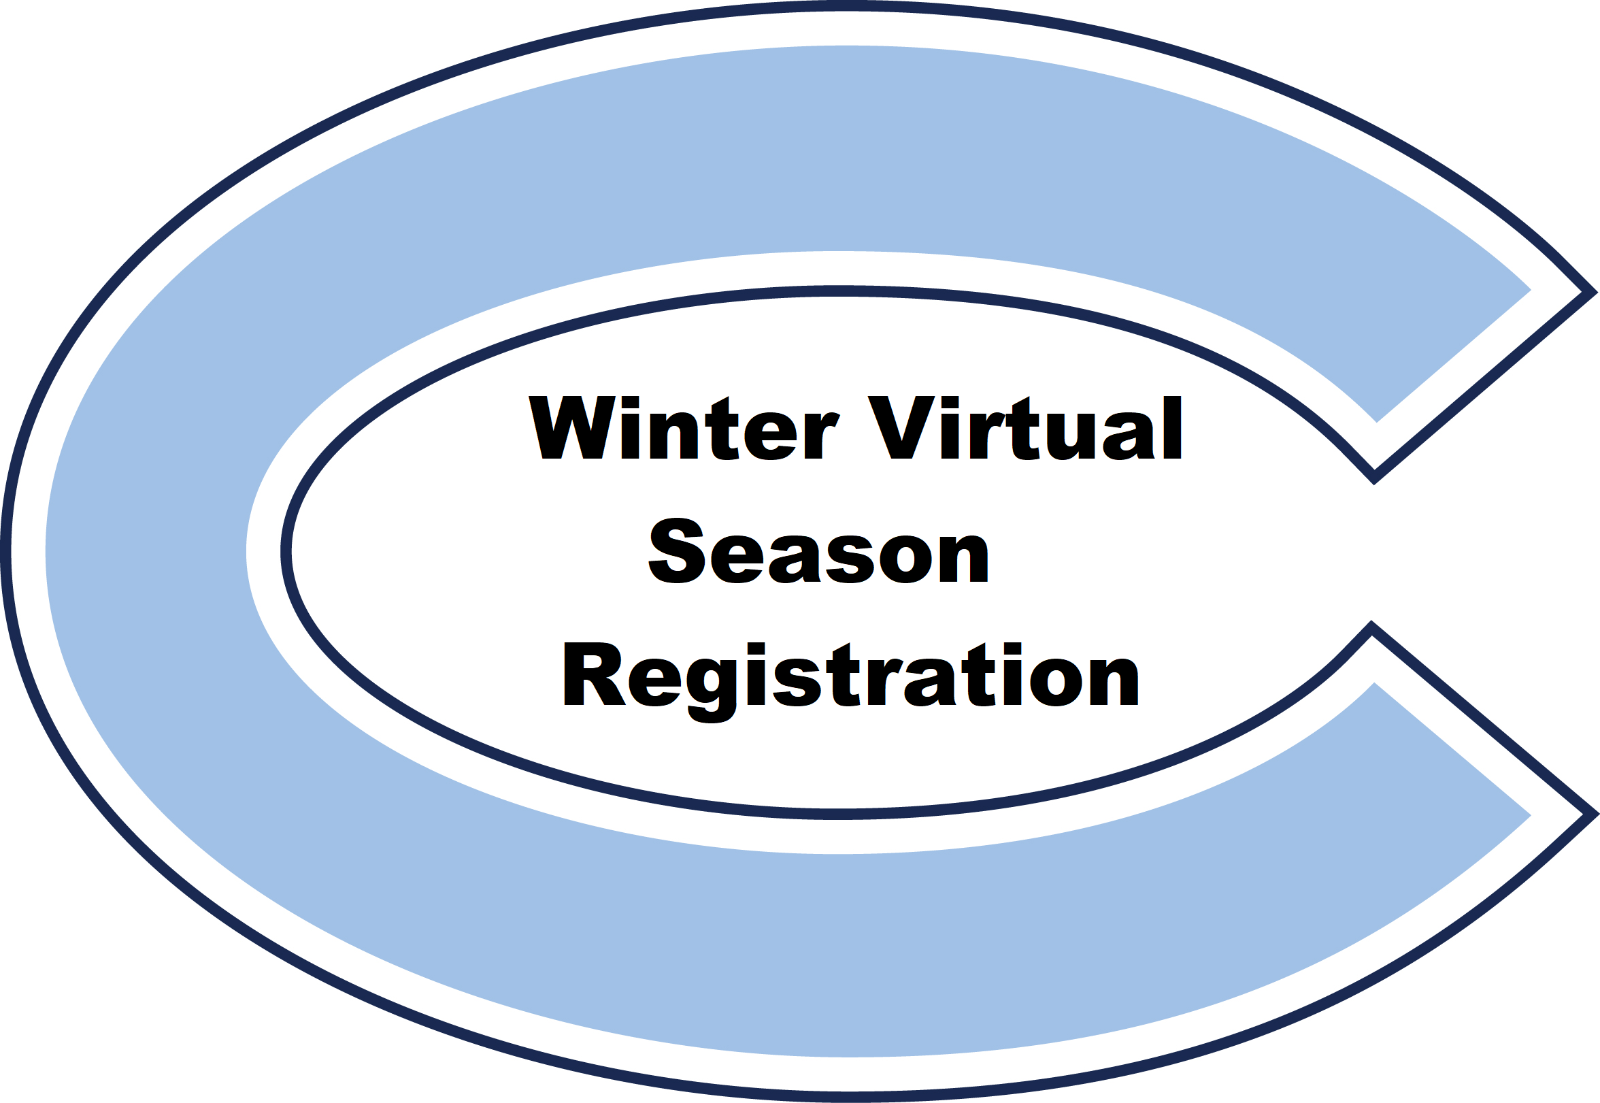 Winter 2020 Virtual Season Online Registration